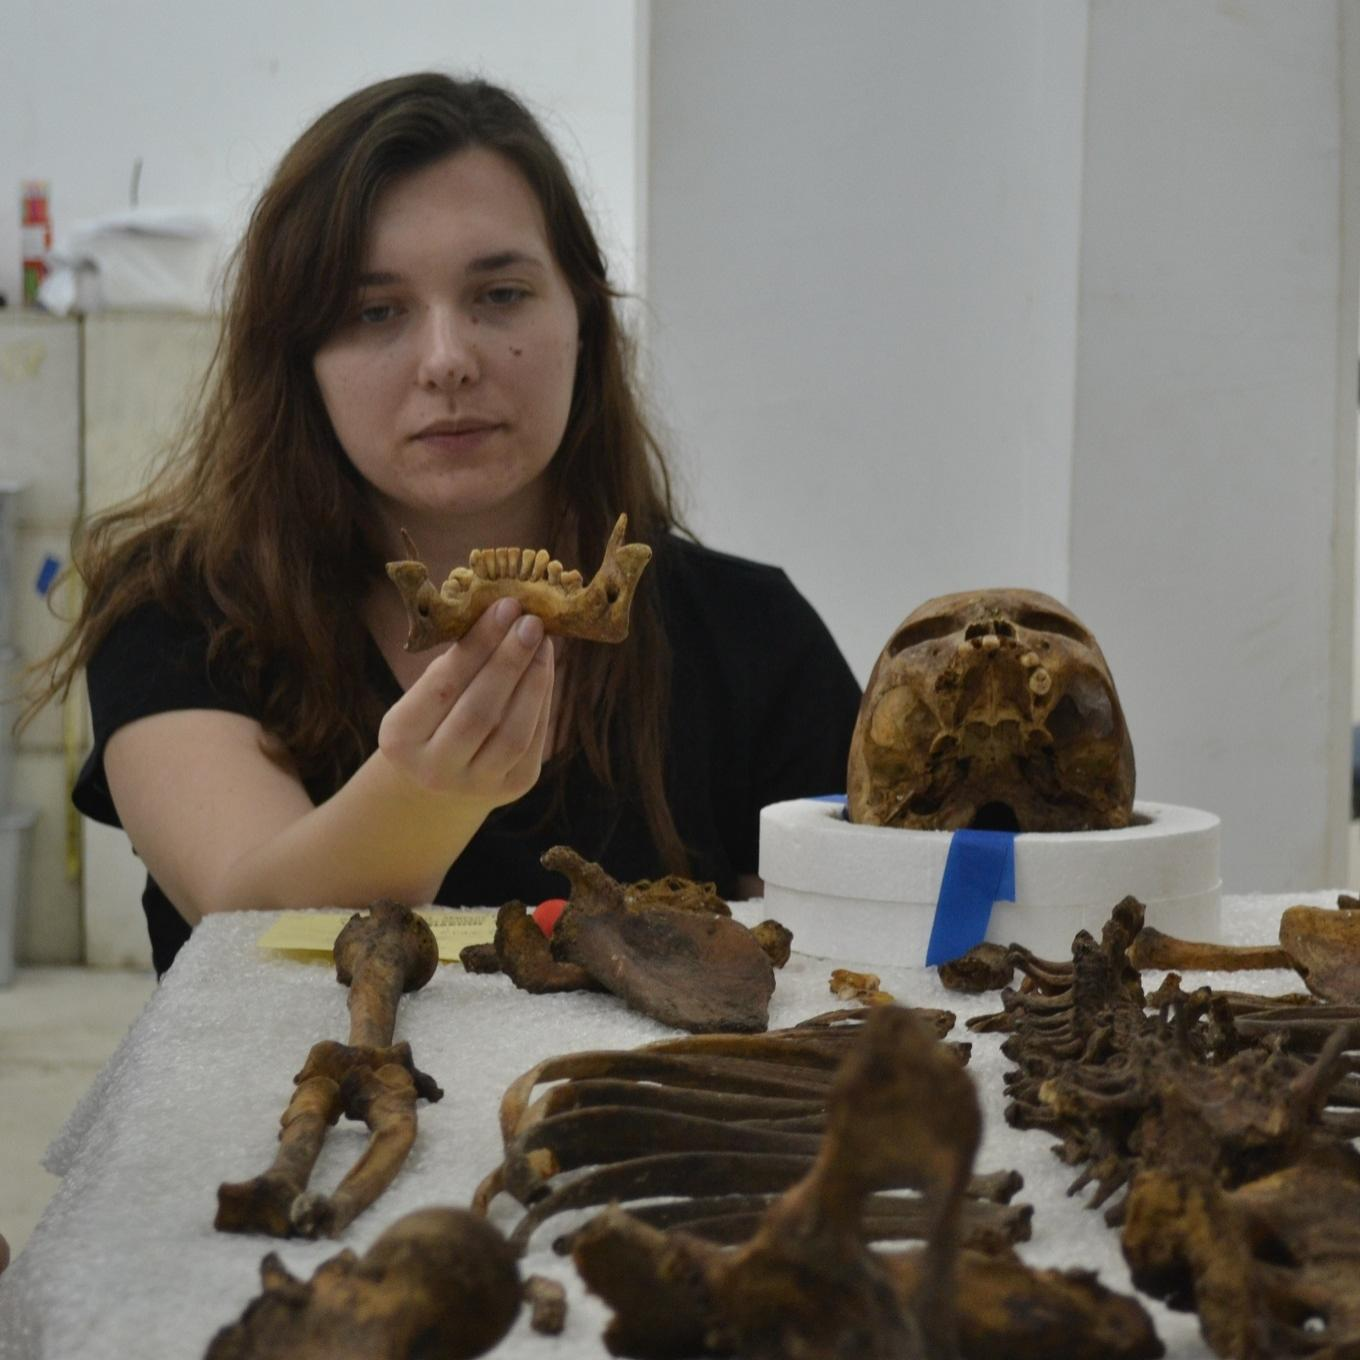 A forensics student examining a skeleton's remains